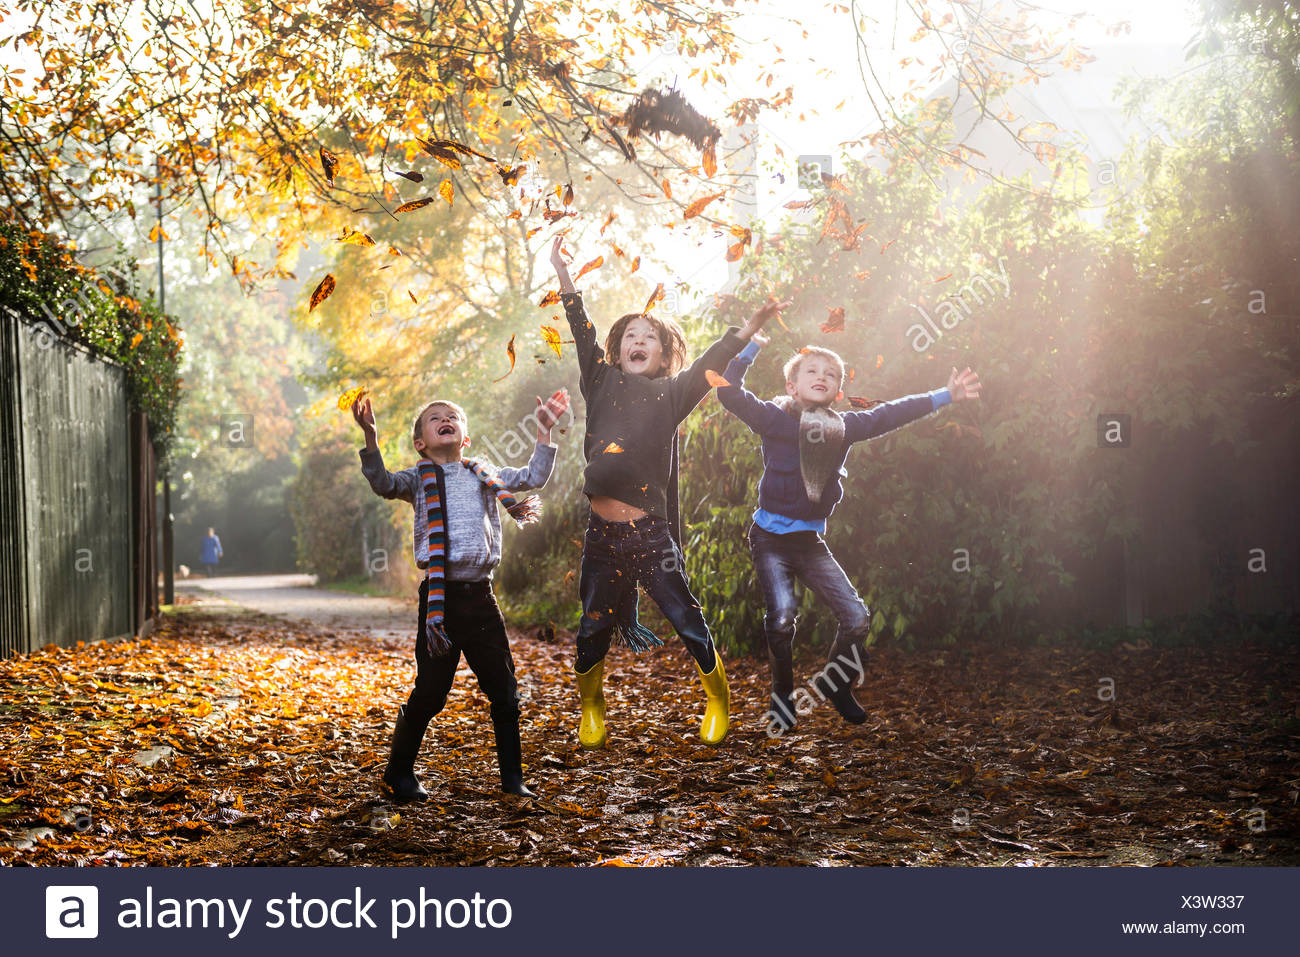 Three young boys, playing outdoors, throwing autumn leaves - Stock Image